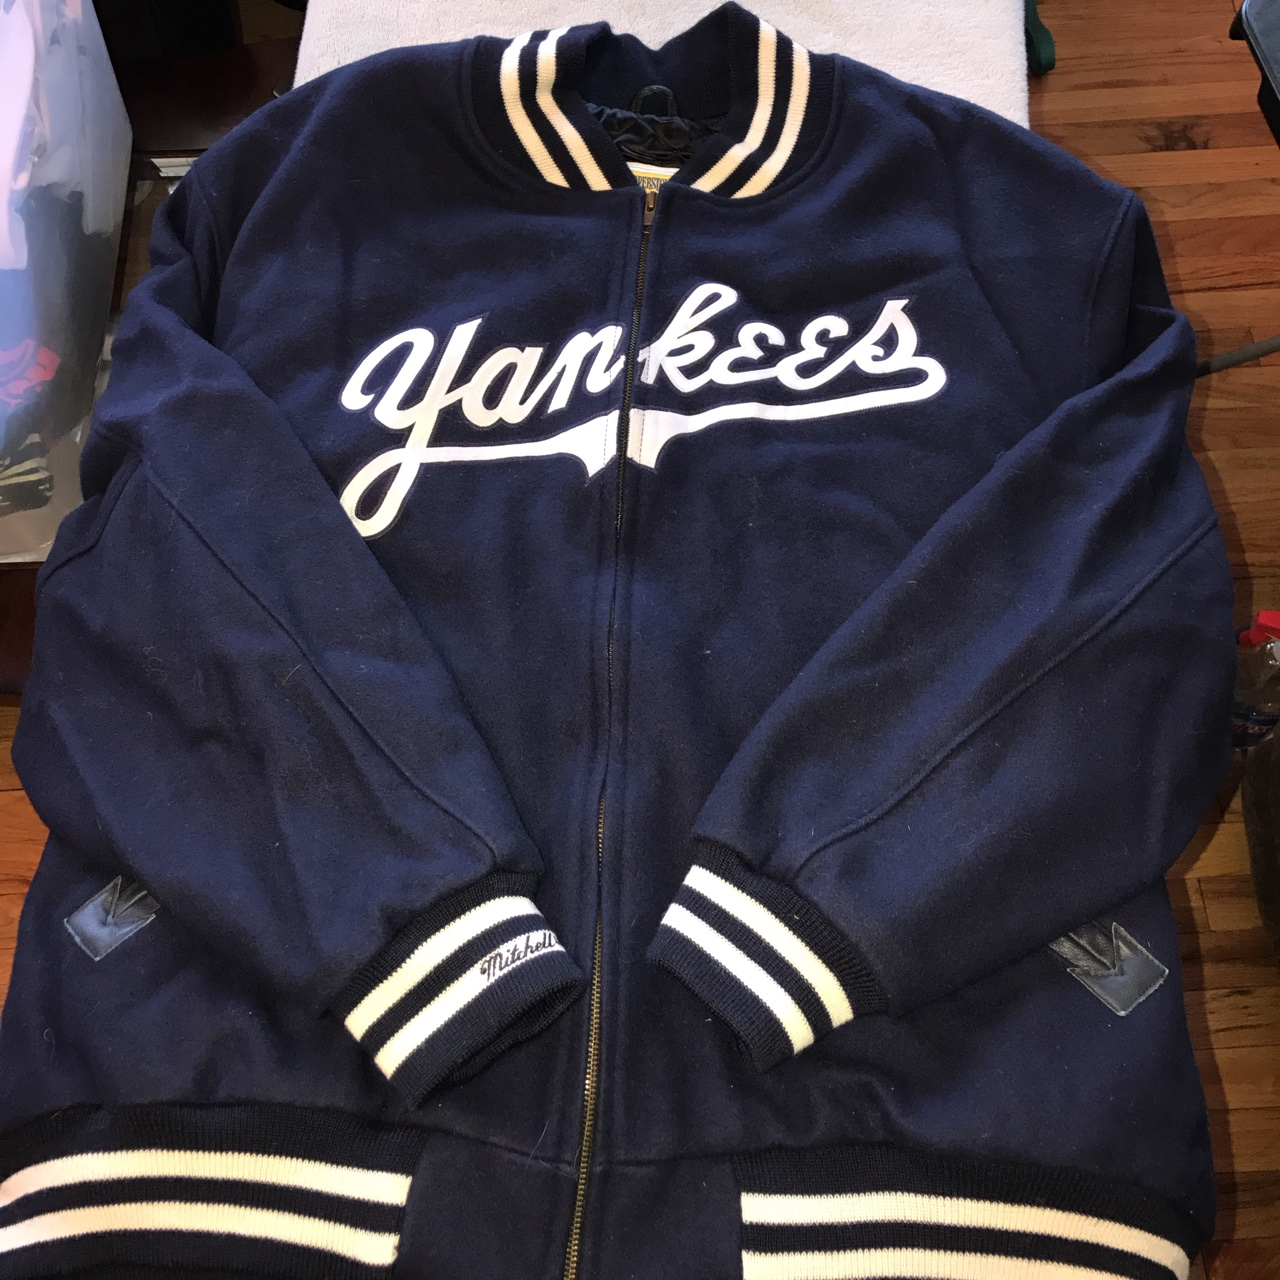 quality design 38256 8a43a Mitchell & ness Cooperstown NEW YORK YANKEES Jacket ...